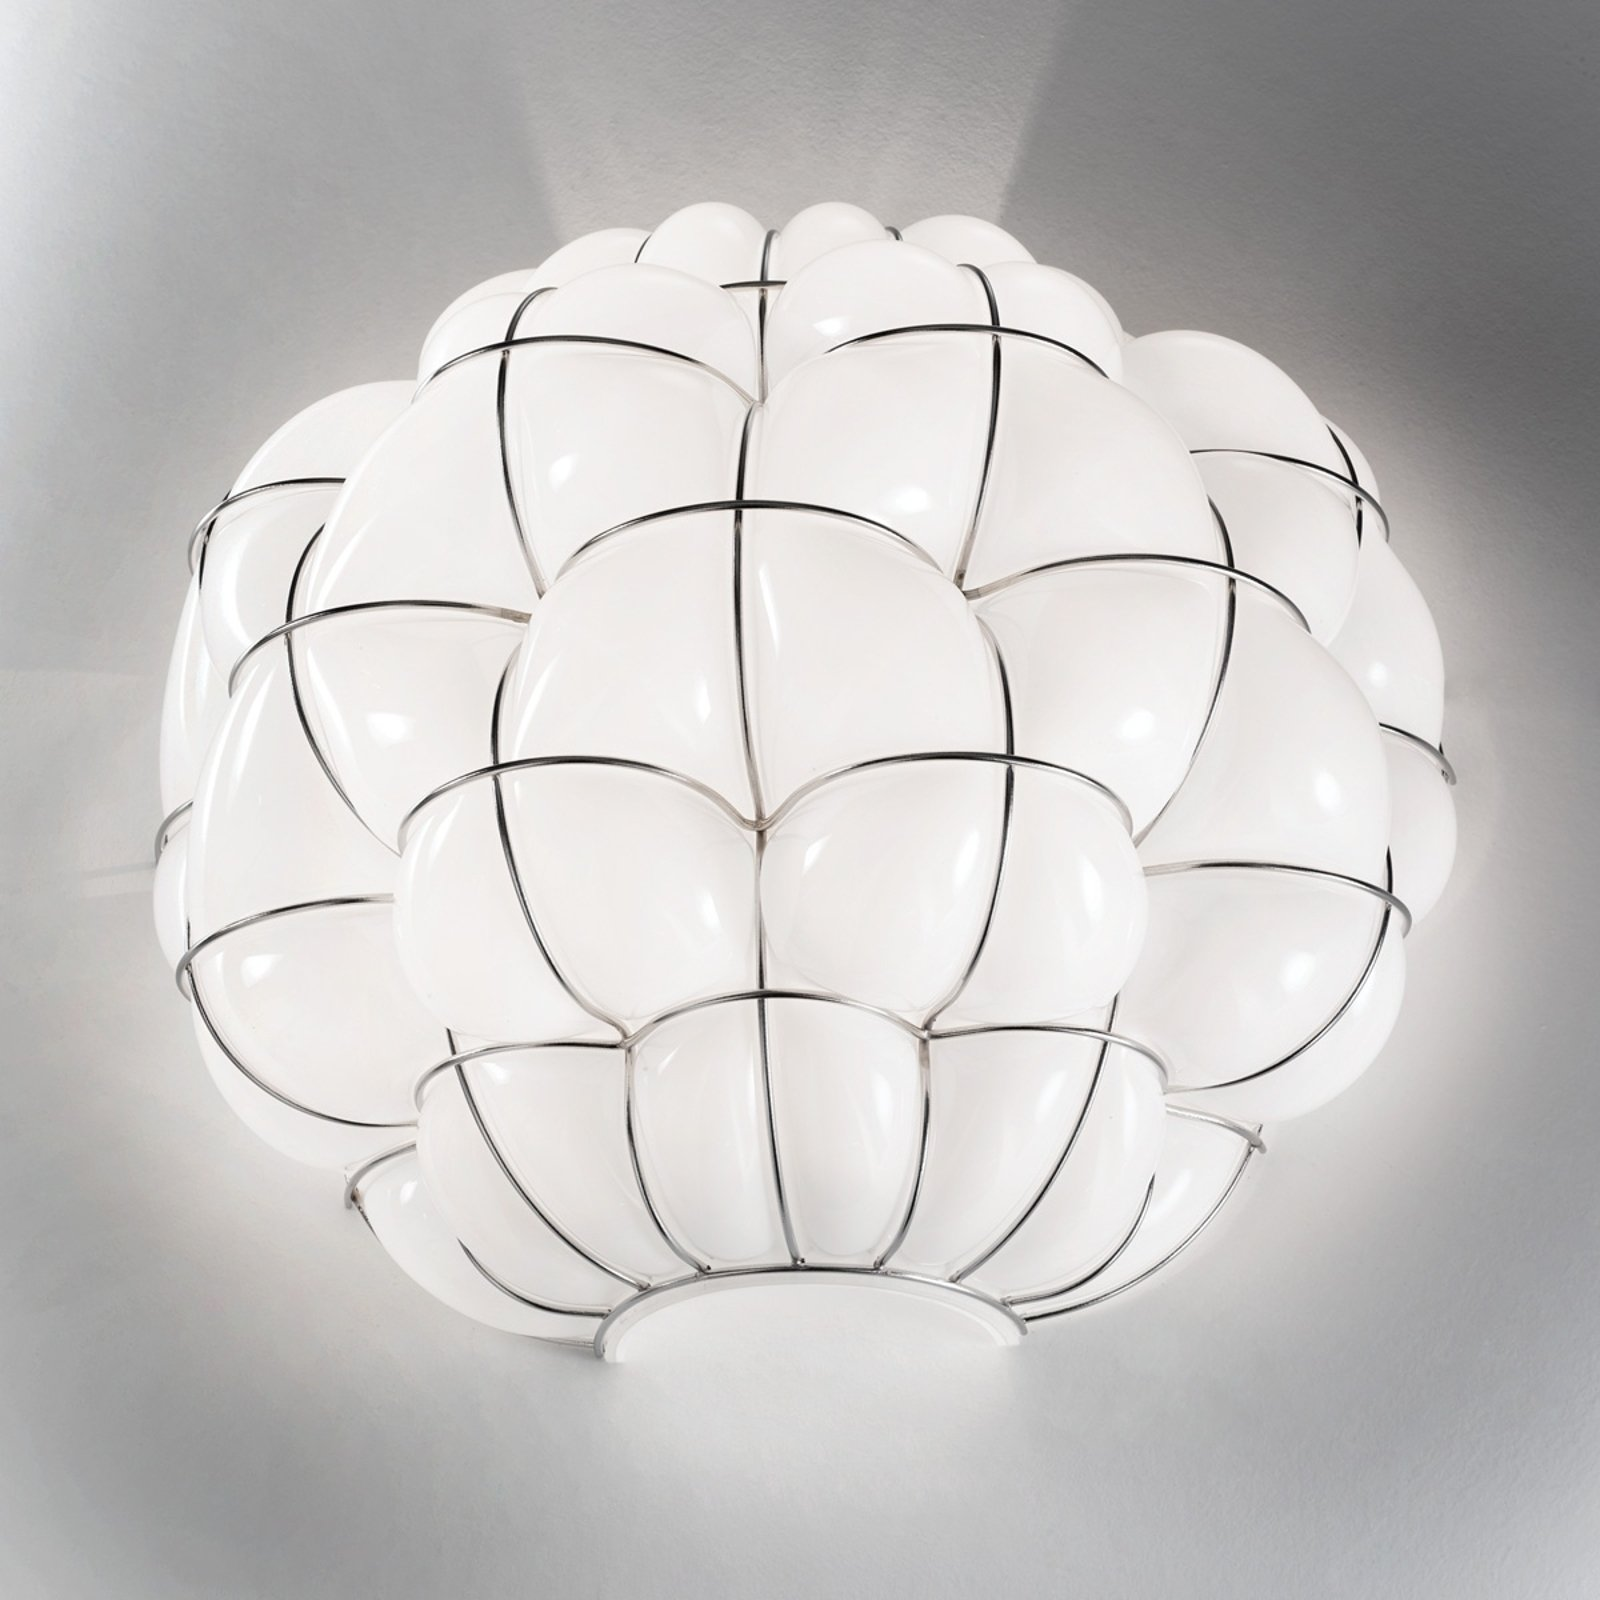 Pouff wall light in white and stainless steel